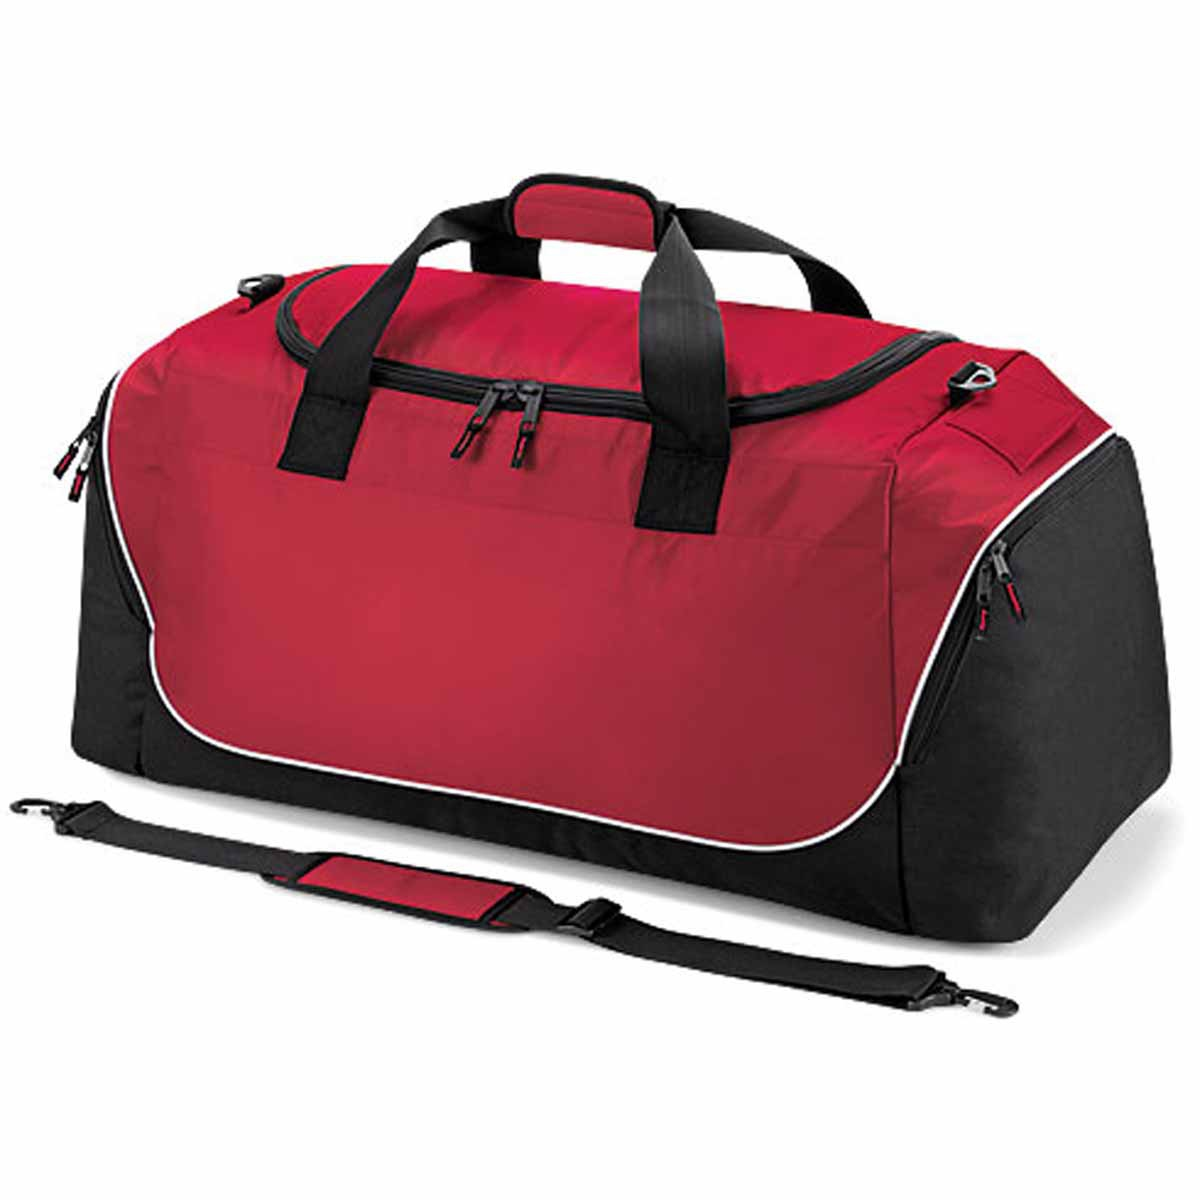 Sac de sport grand volume 104 L - QS88 - rouge - noir - blanc